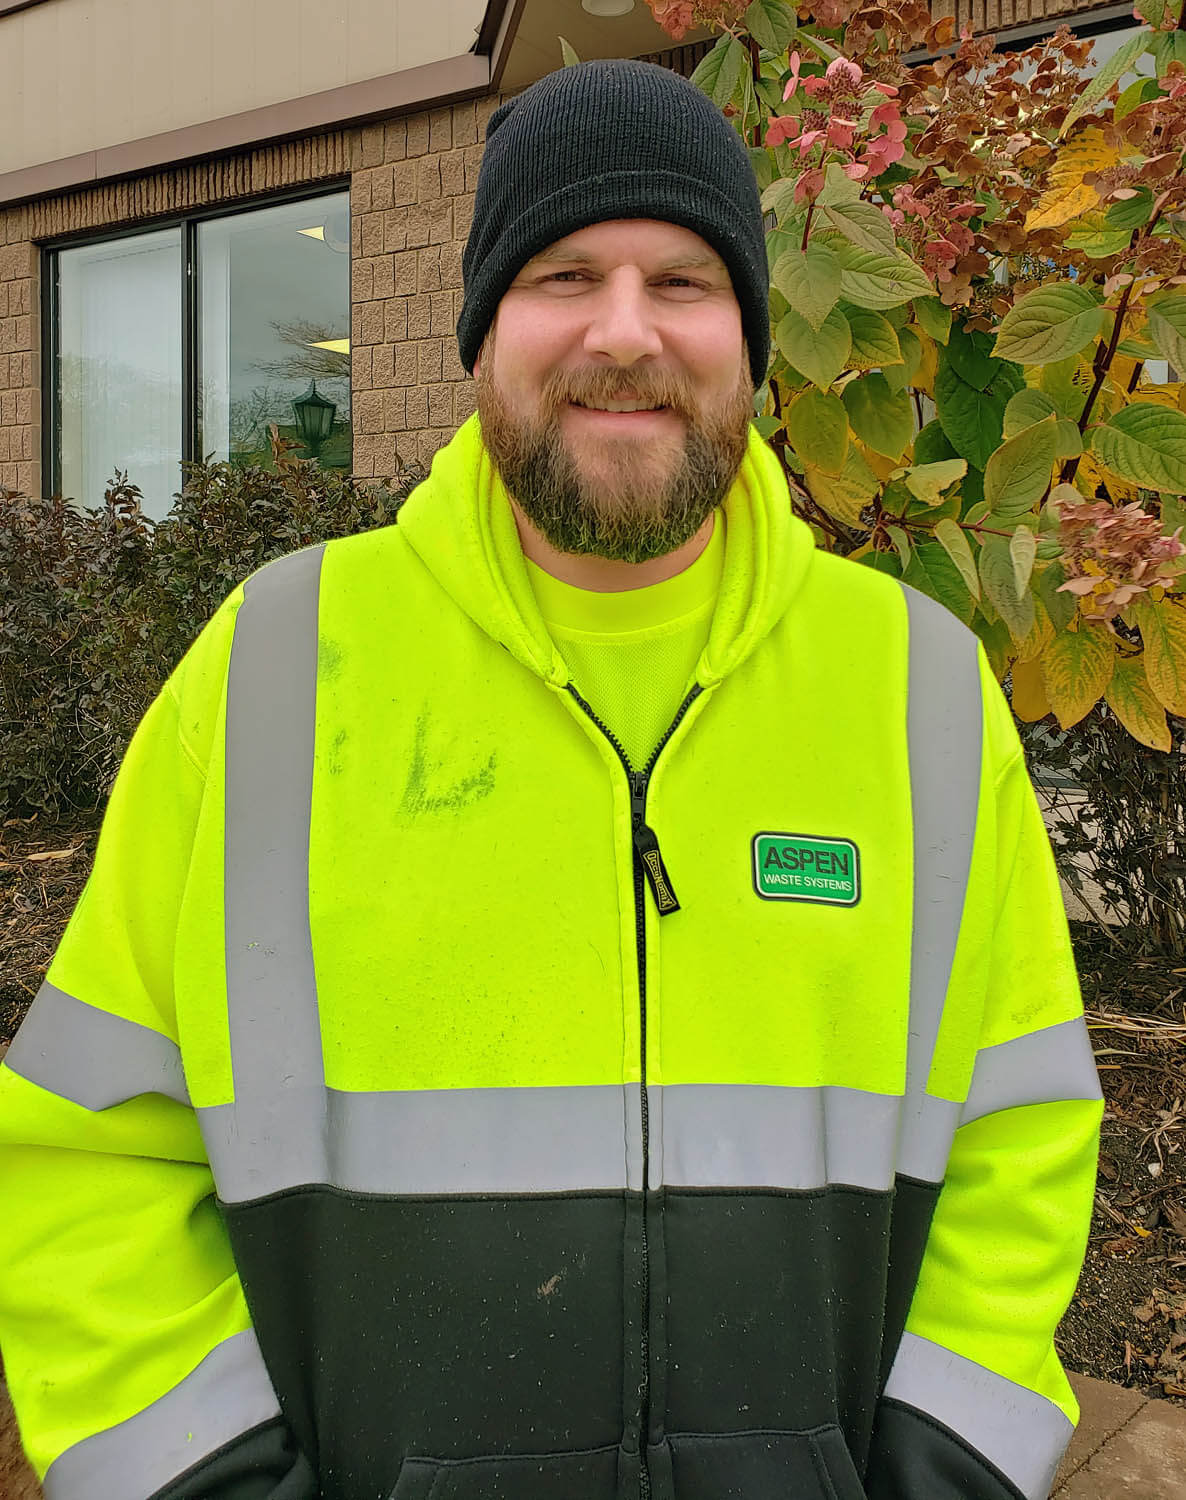 With support from Rise and HCMHC, Cliff finds a great job at Aspen Waste Systems that suits his personality perfectly